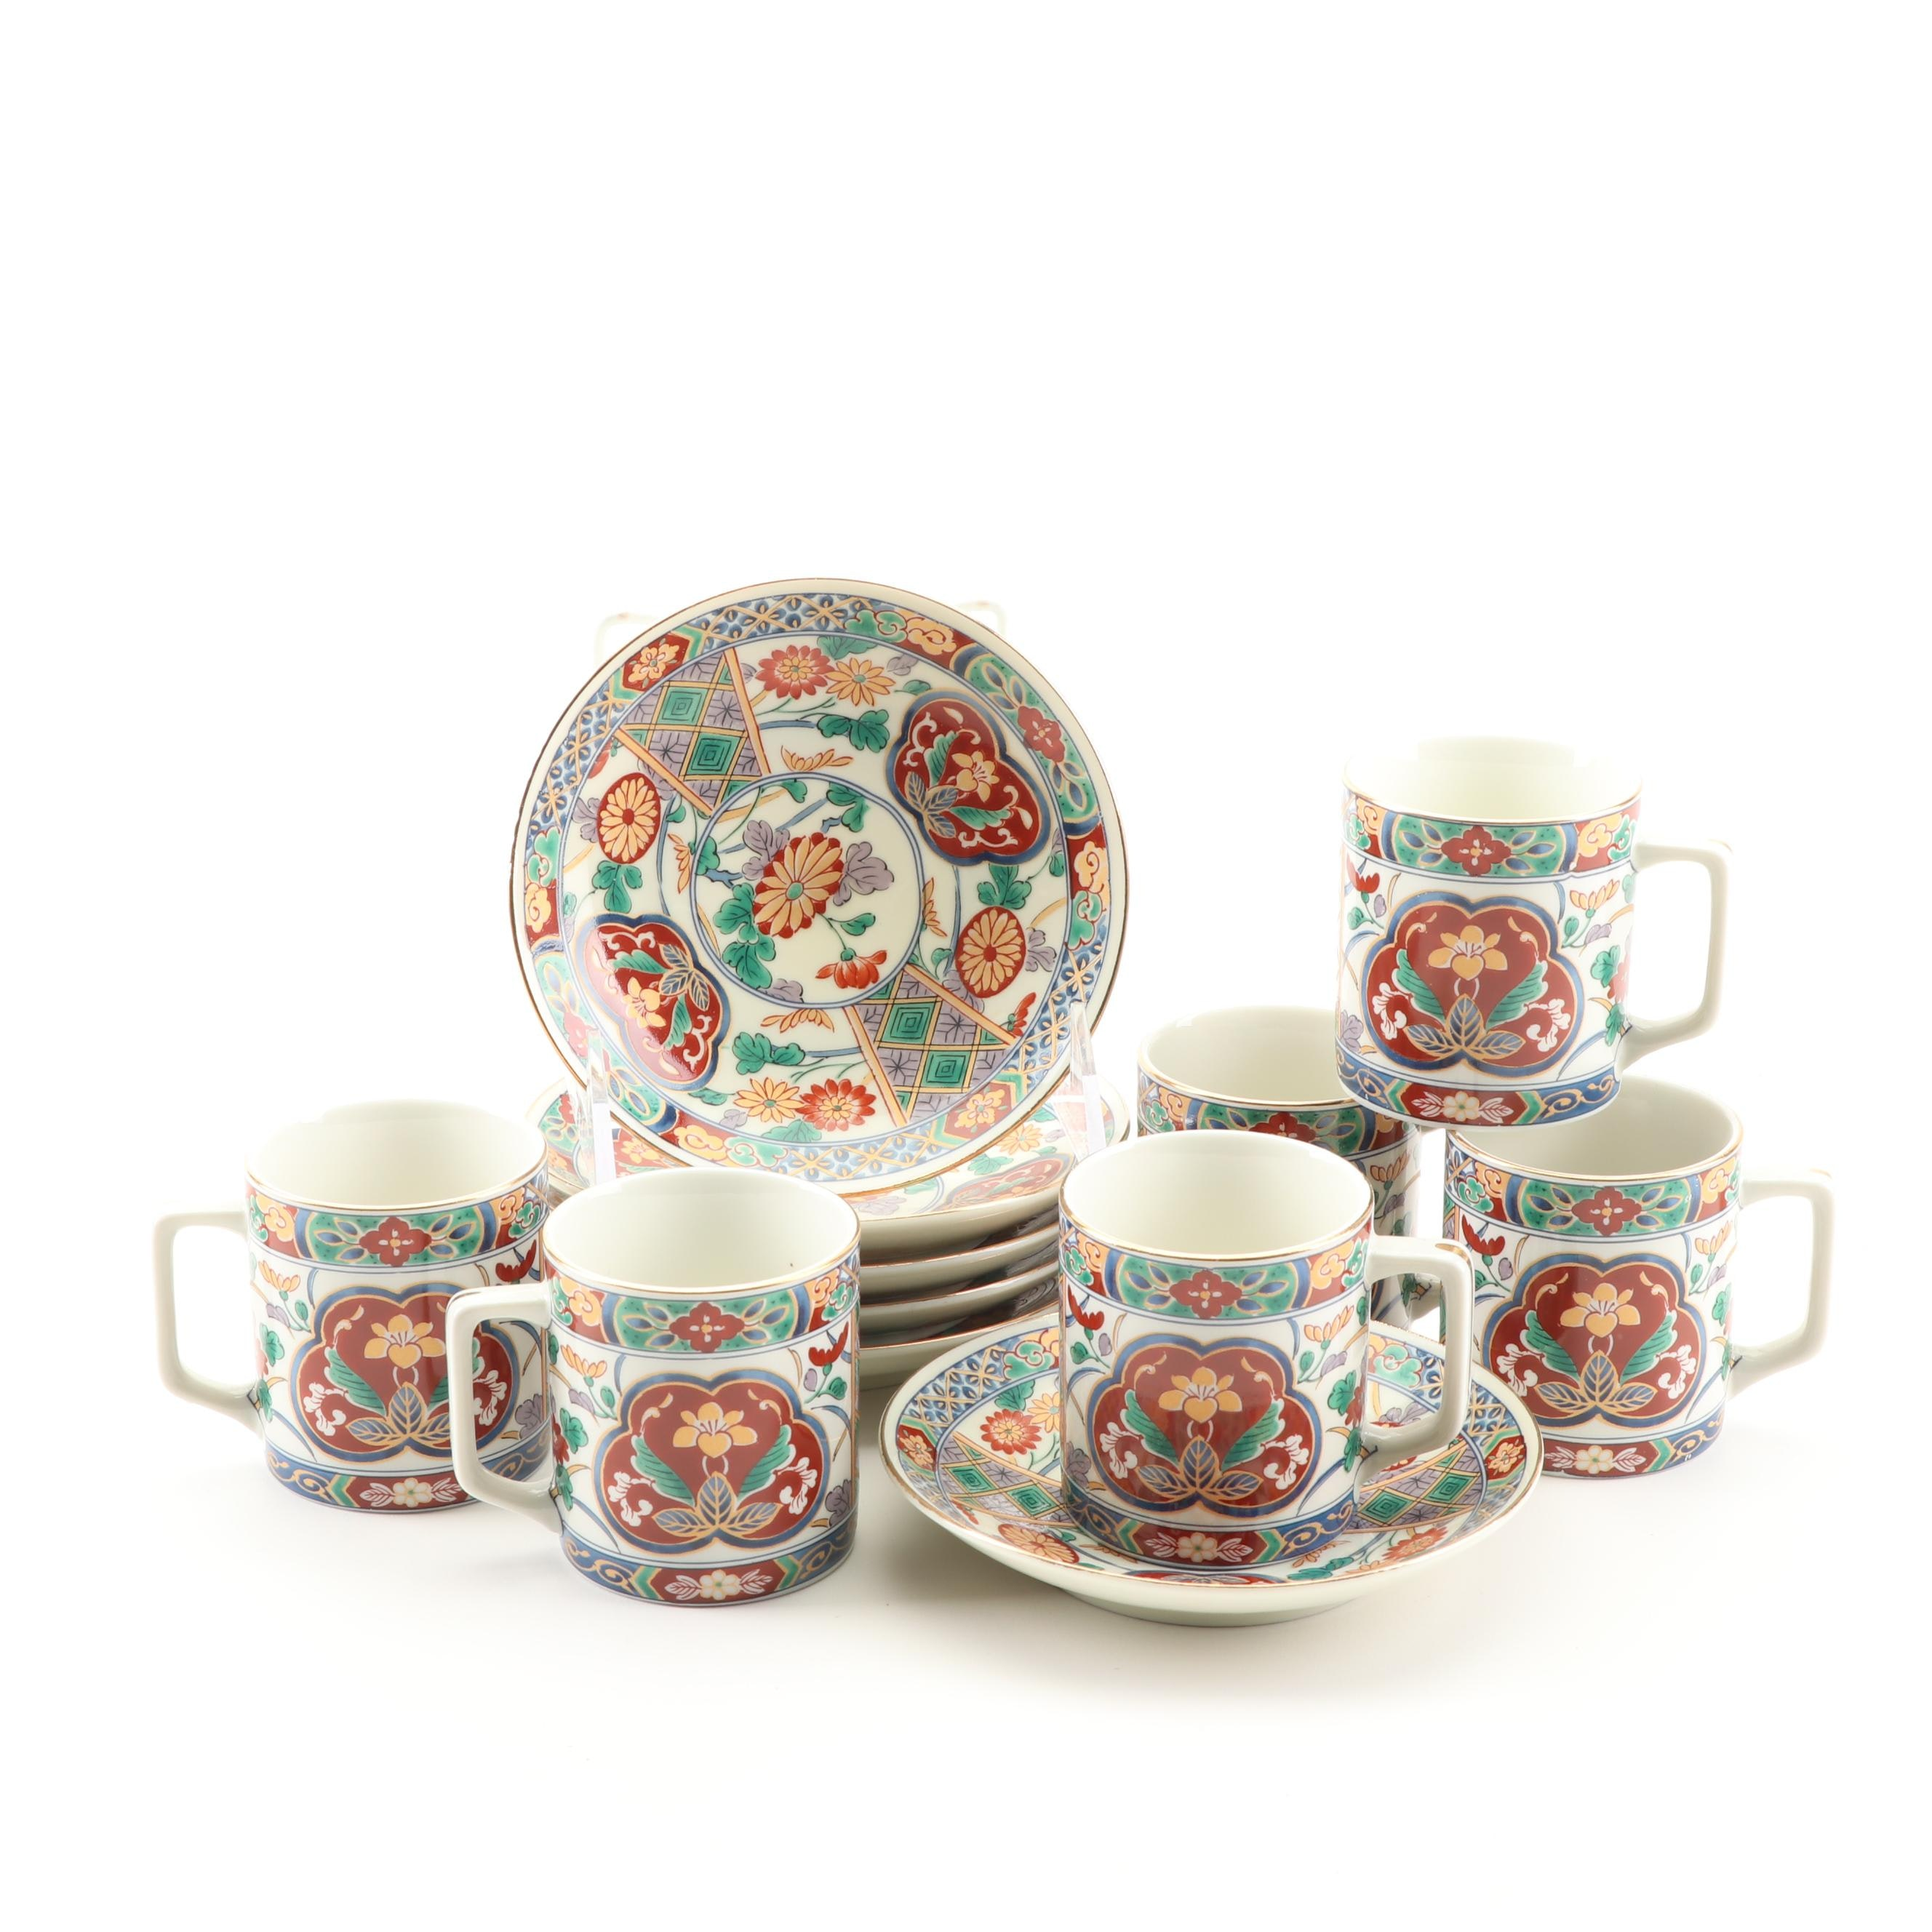 Andrea by Sadek Japanese Demitasse Cups and Saucers Sets